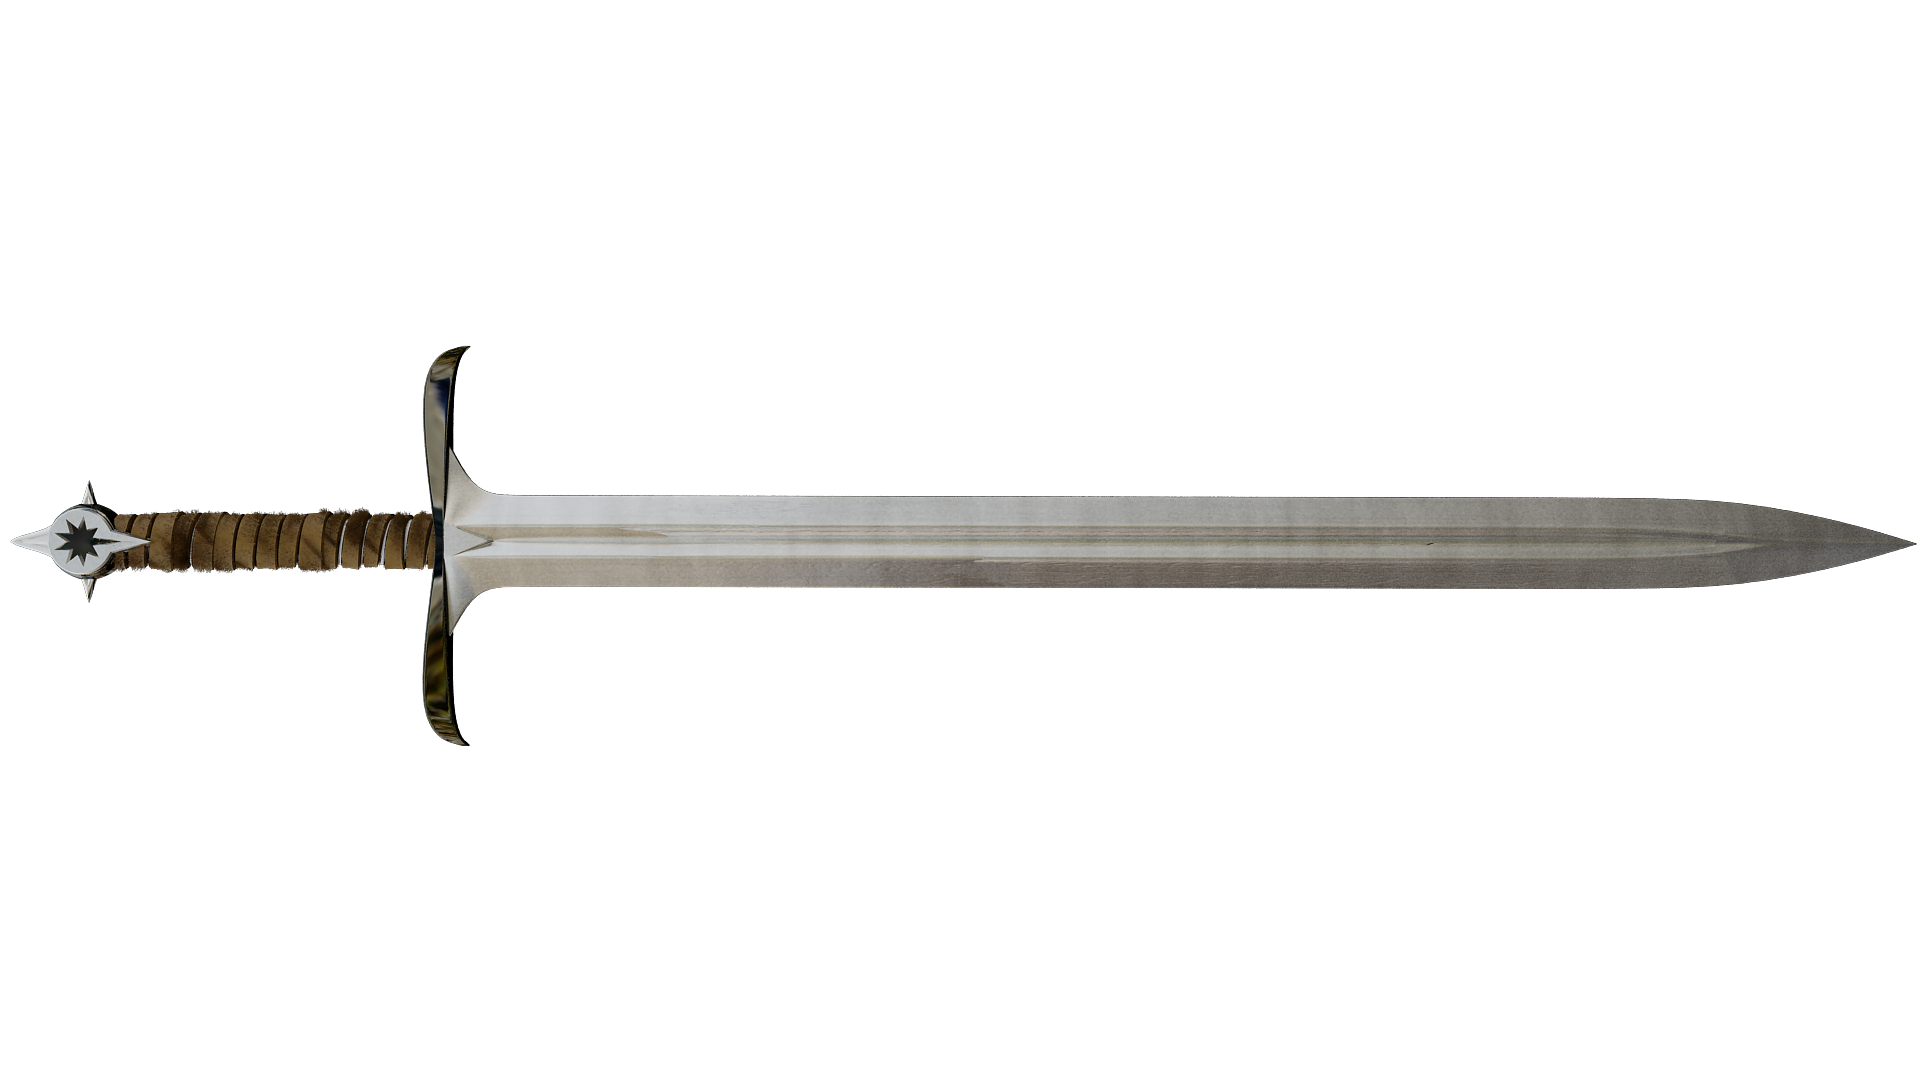 Among The Stars Sword-hd-png-sword-png-image-1920